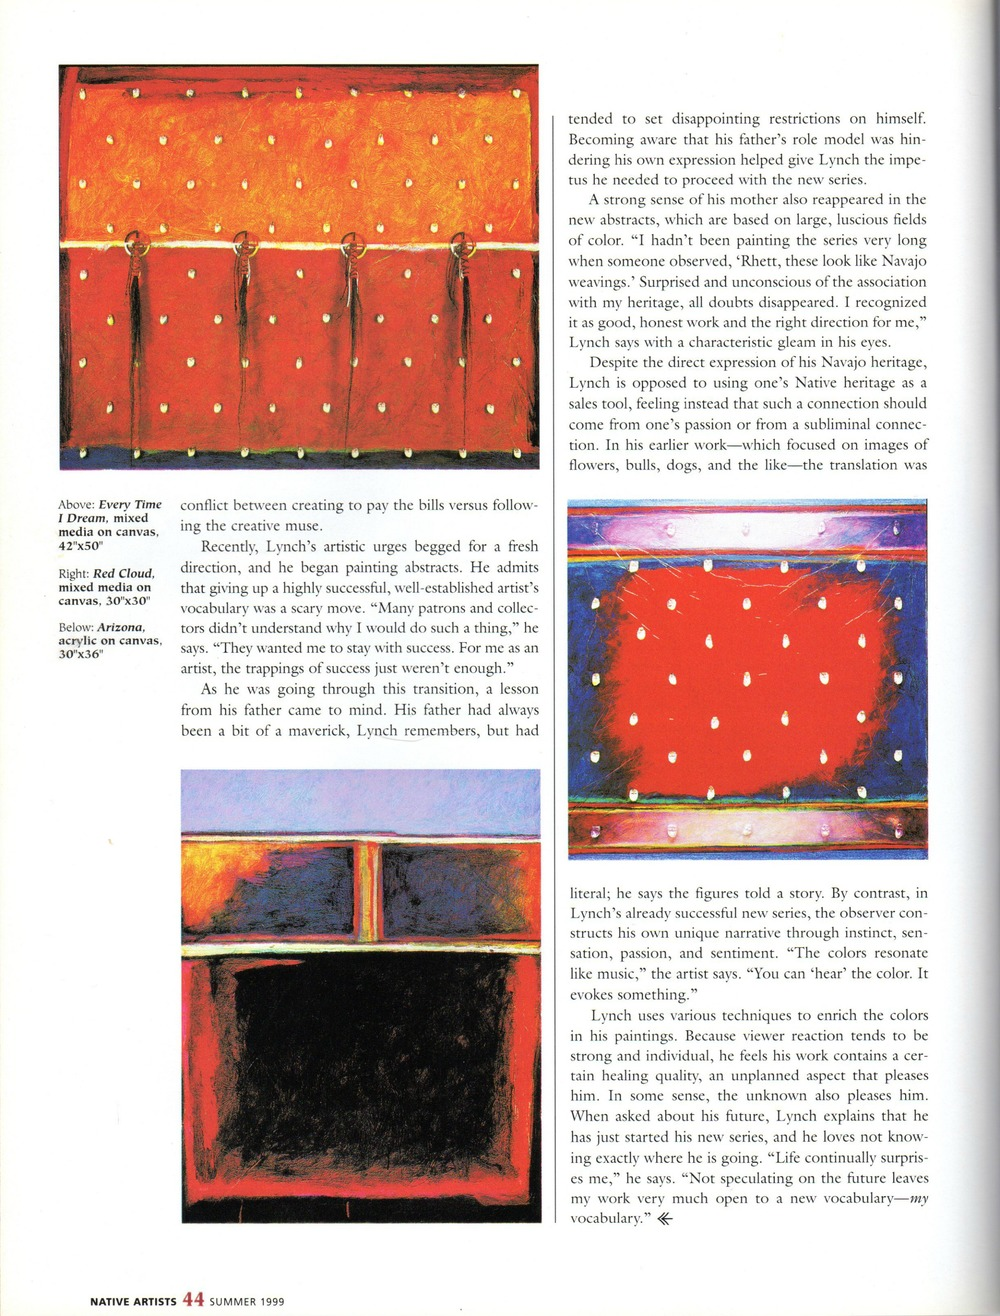 Native Artist Summer 1999 p.44..jpg